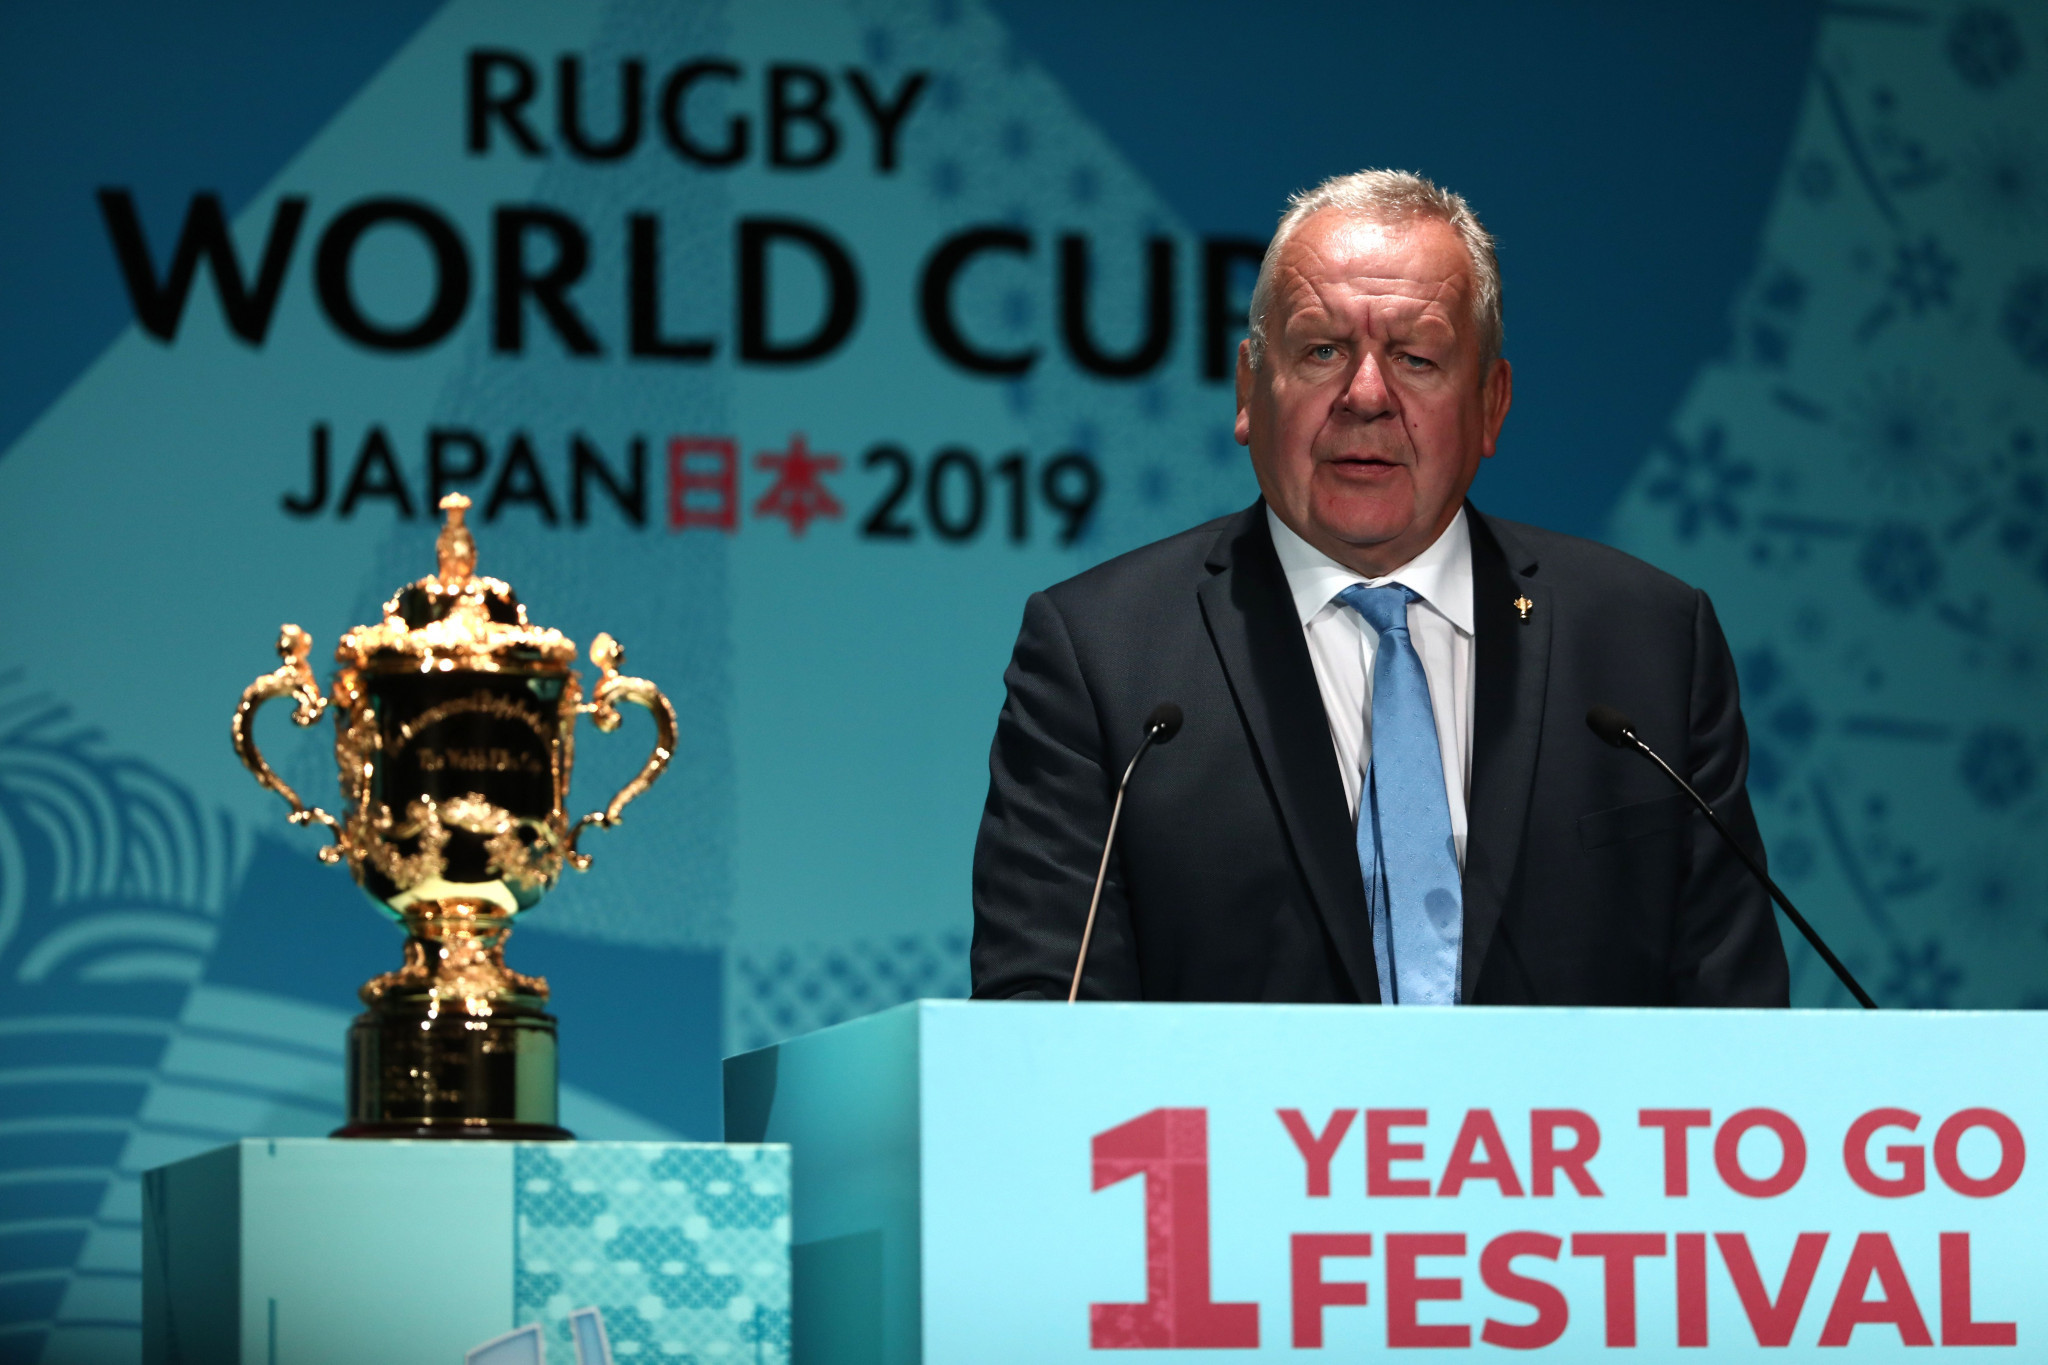 World Rugby chairman Bill Beaumont commented on the record ticket demand for the Rugby World Cup 2019, saying that it showed that Asia's first Rugby World Cup had